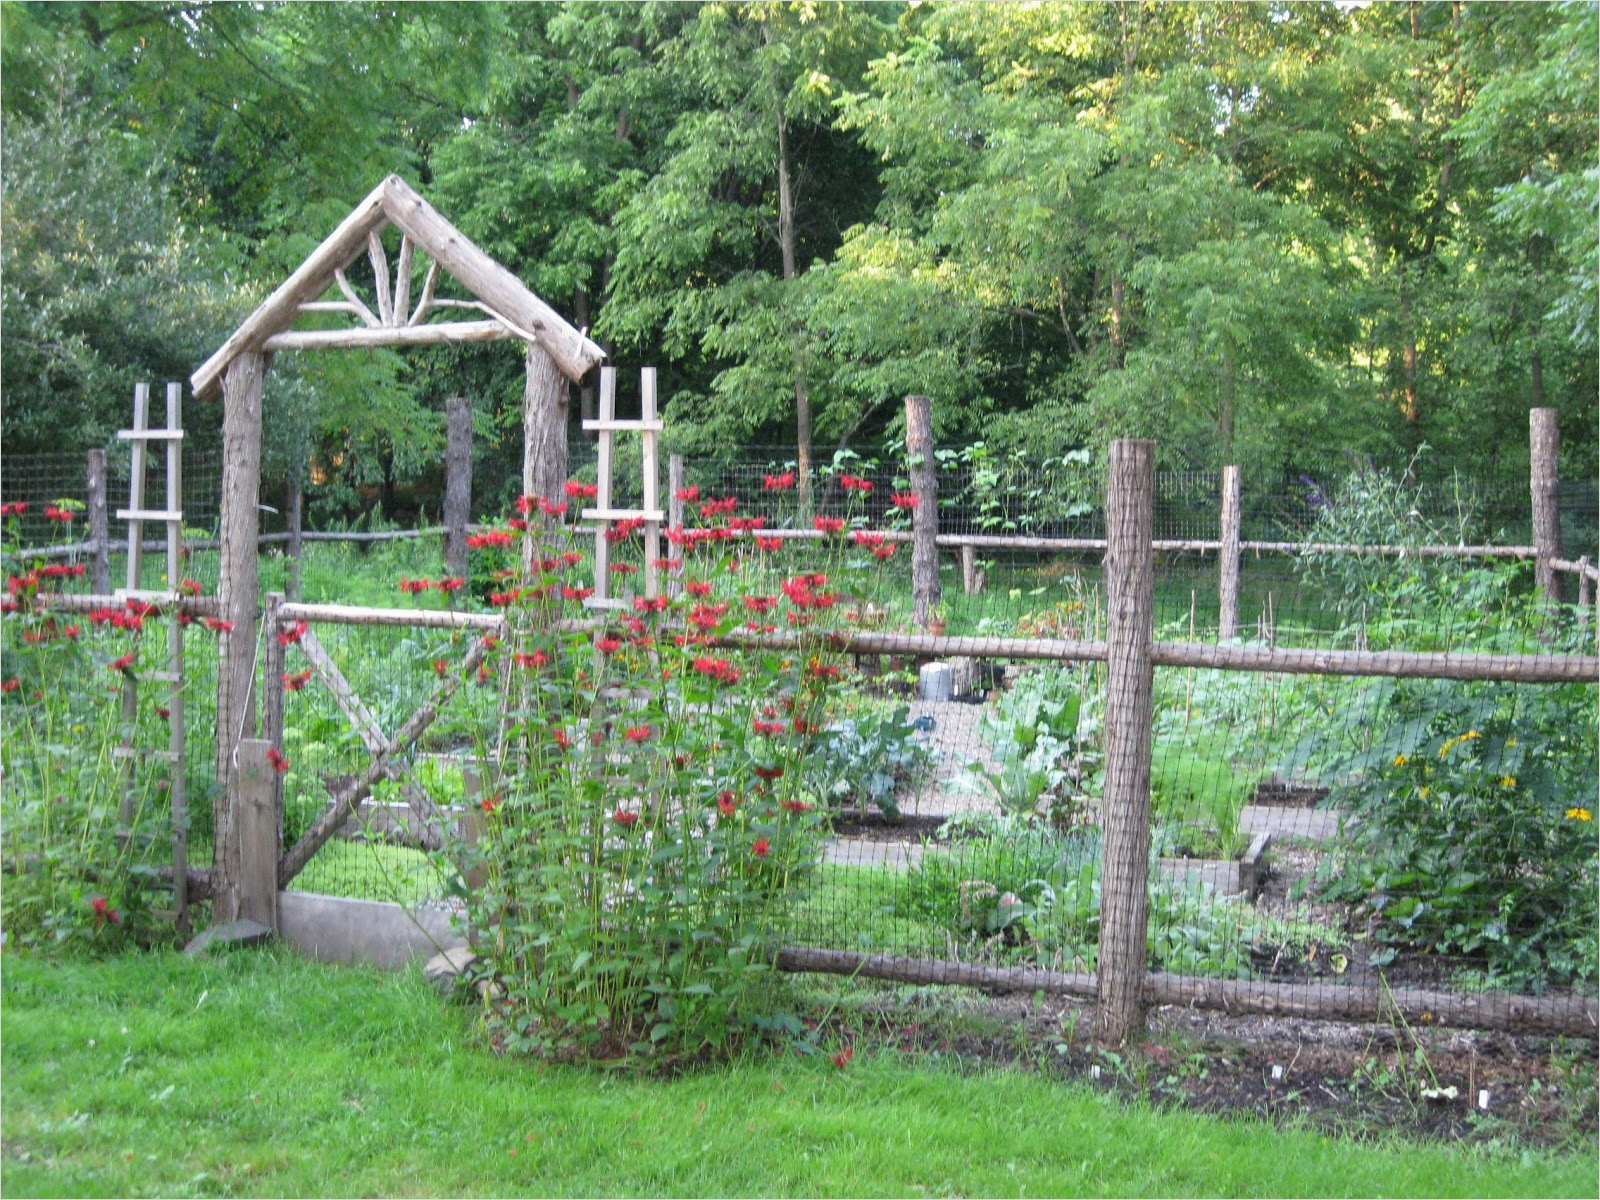 44 Amazing Rustic Garden Ideas 13 Two Men and A Little Farm Inspiration Thursday Rustic Garden Fence 9